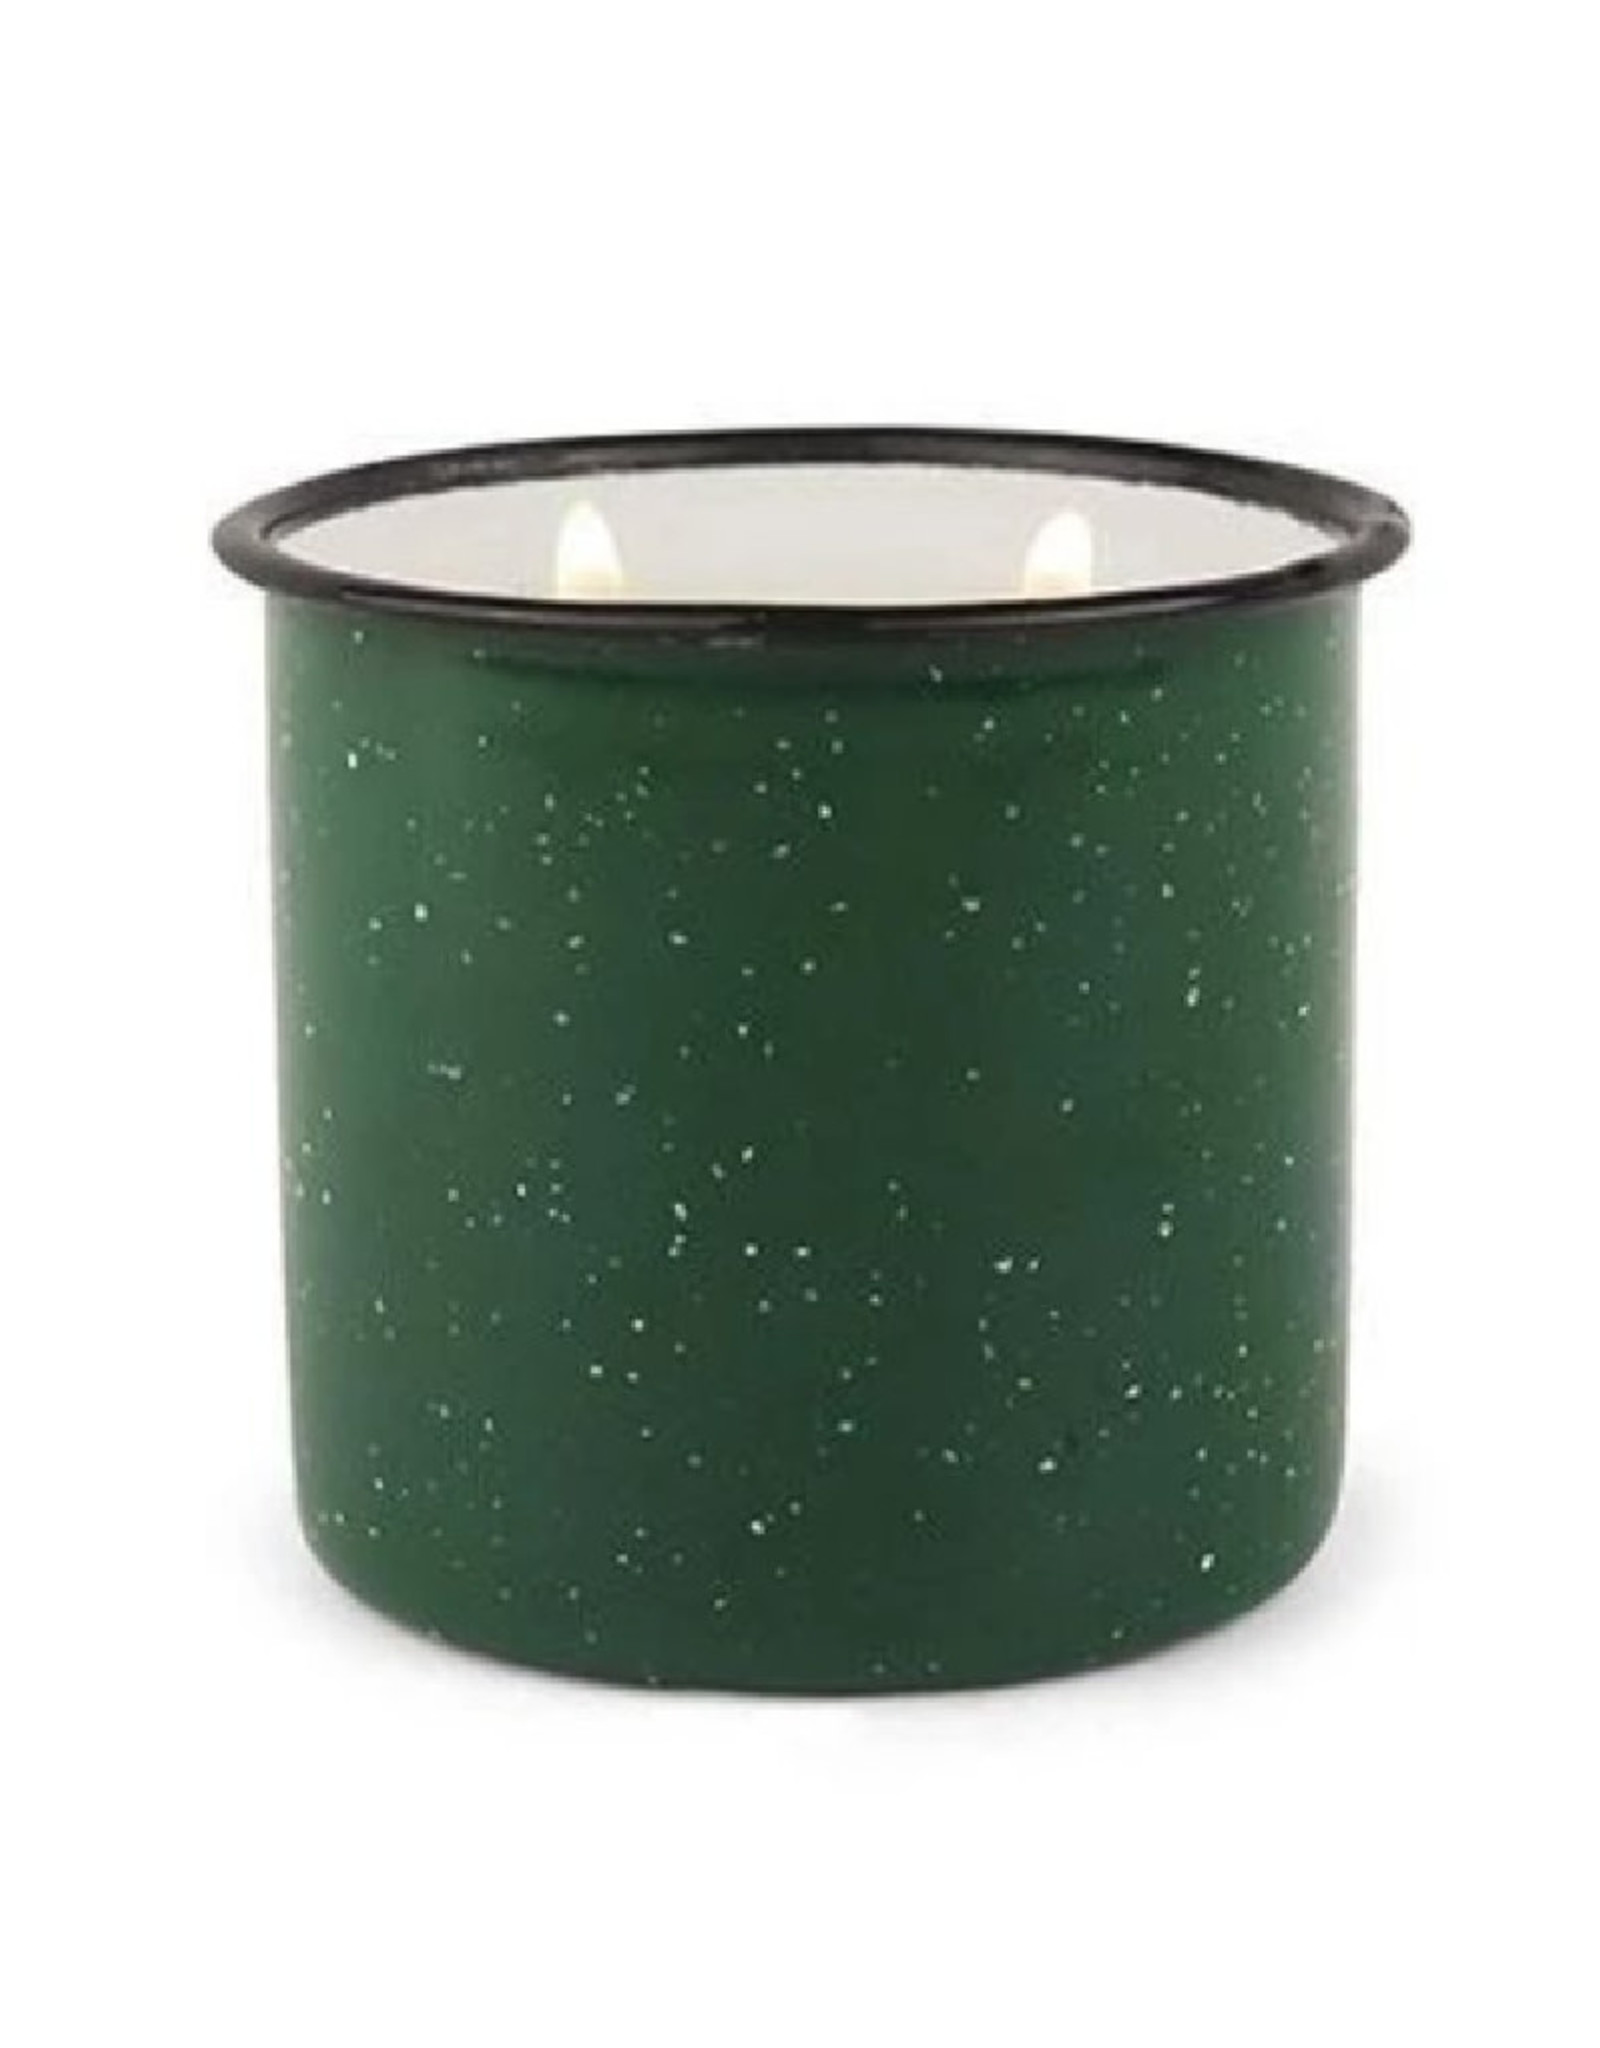 Alpine Enamelware Candle - 9.5 oz. - Green, Evergreen & Embers